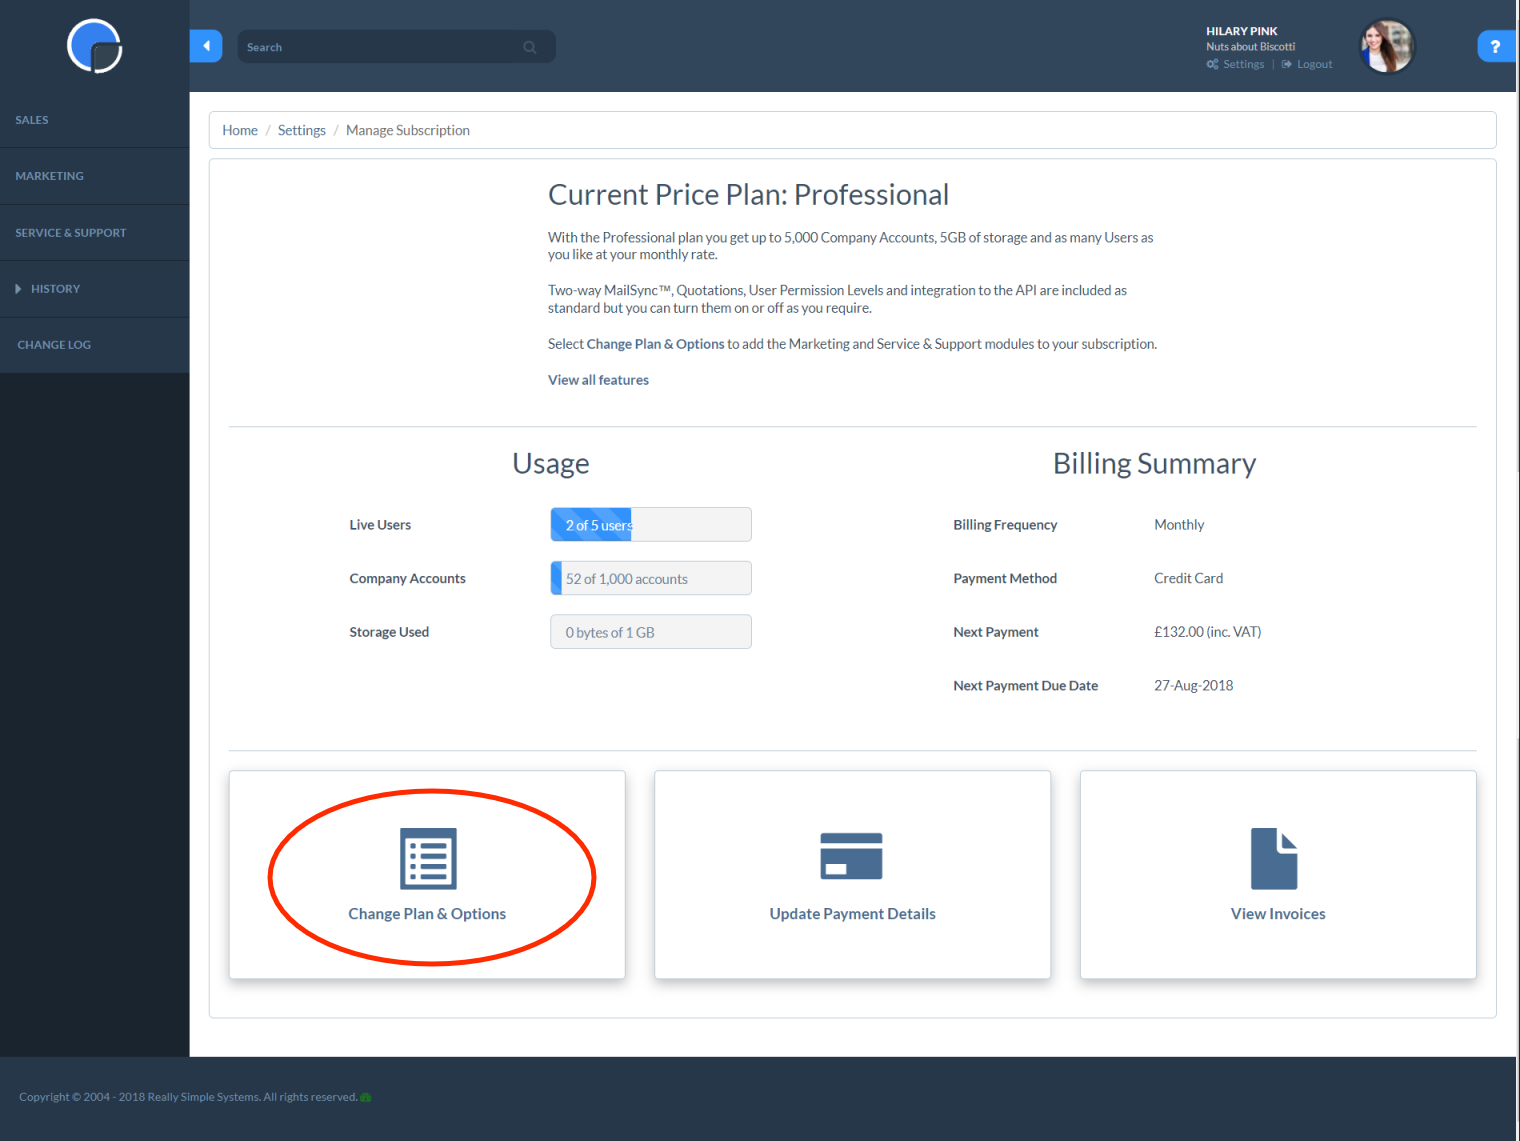 Manage Subscription: Change Plan & Options